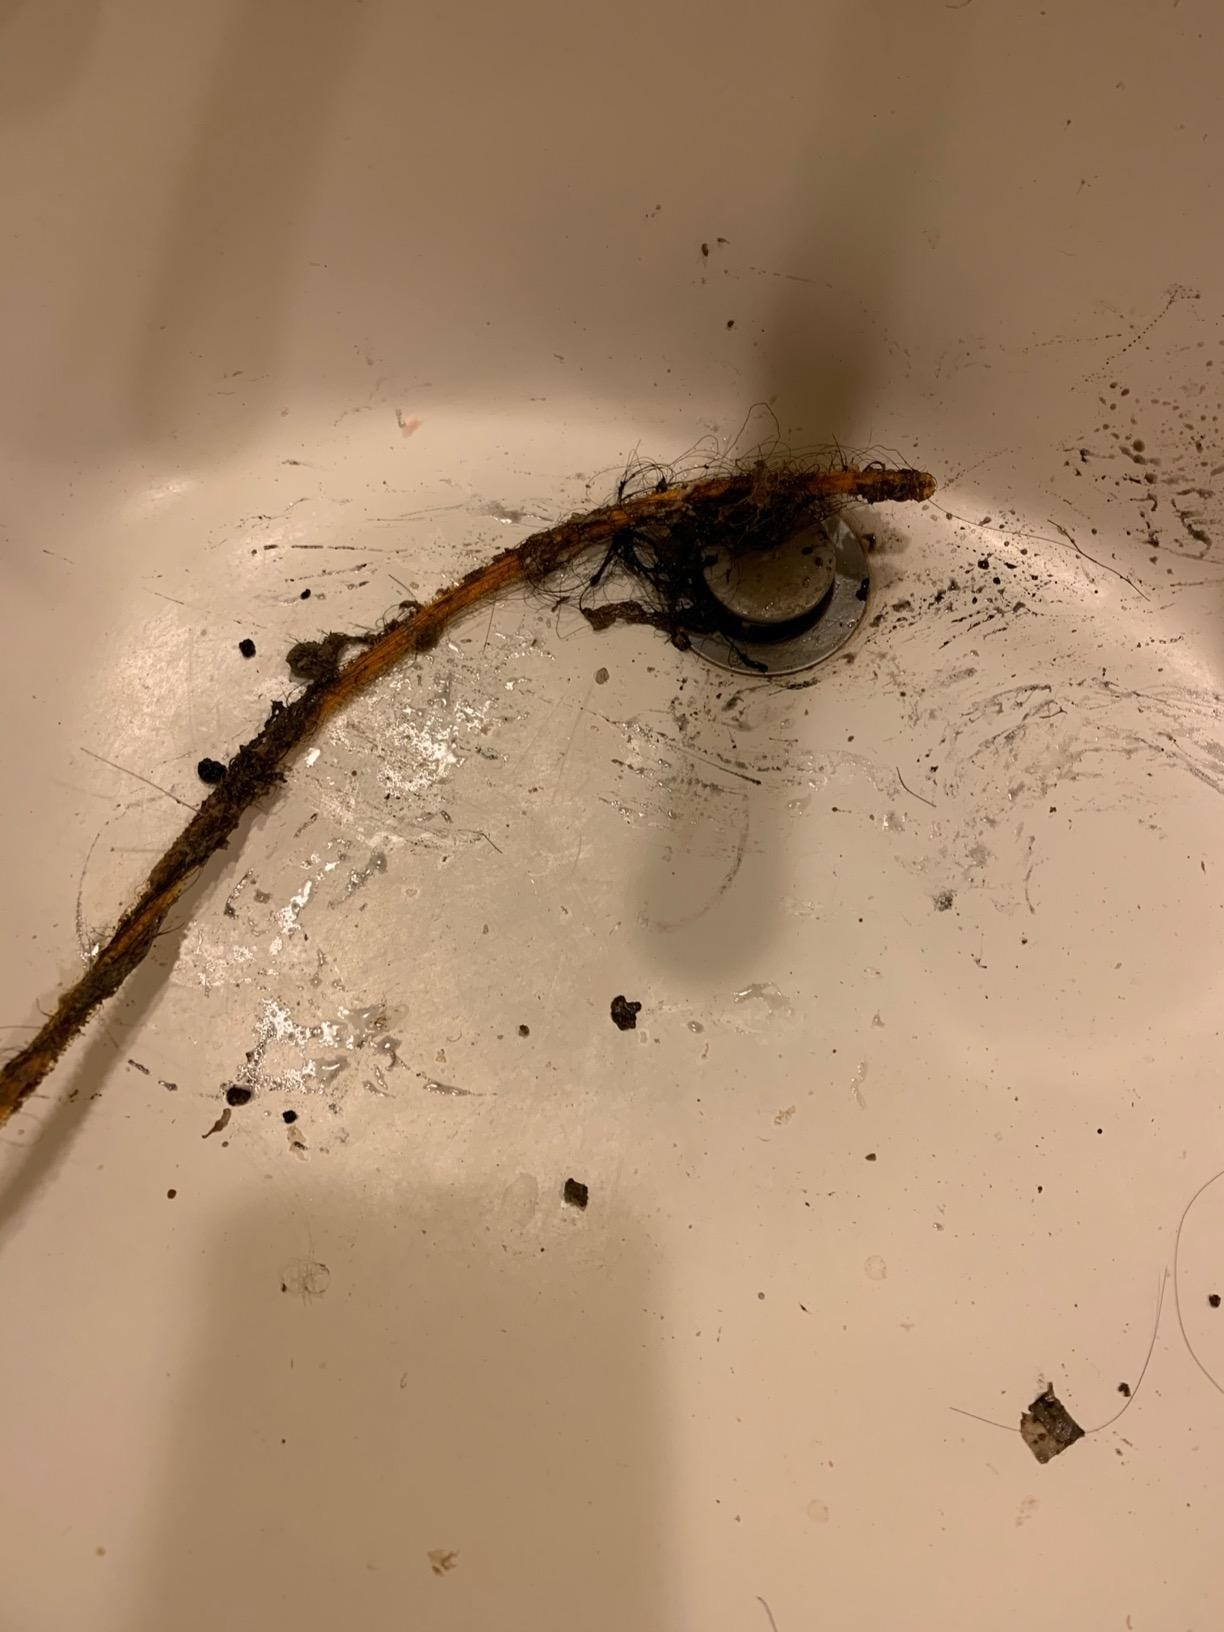 A review image of black goop and hair removed from the drain, in a tub